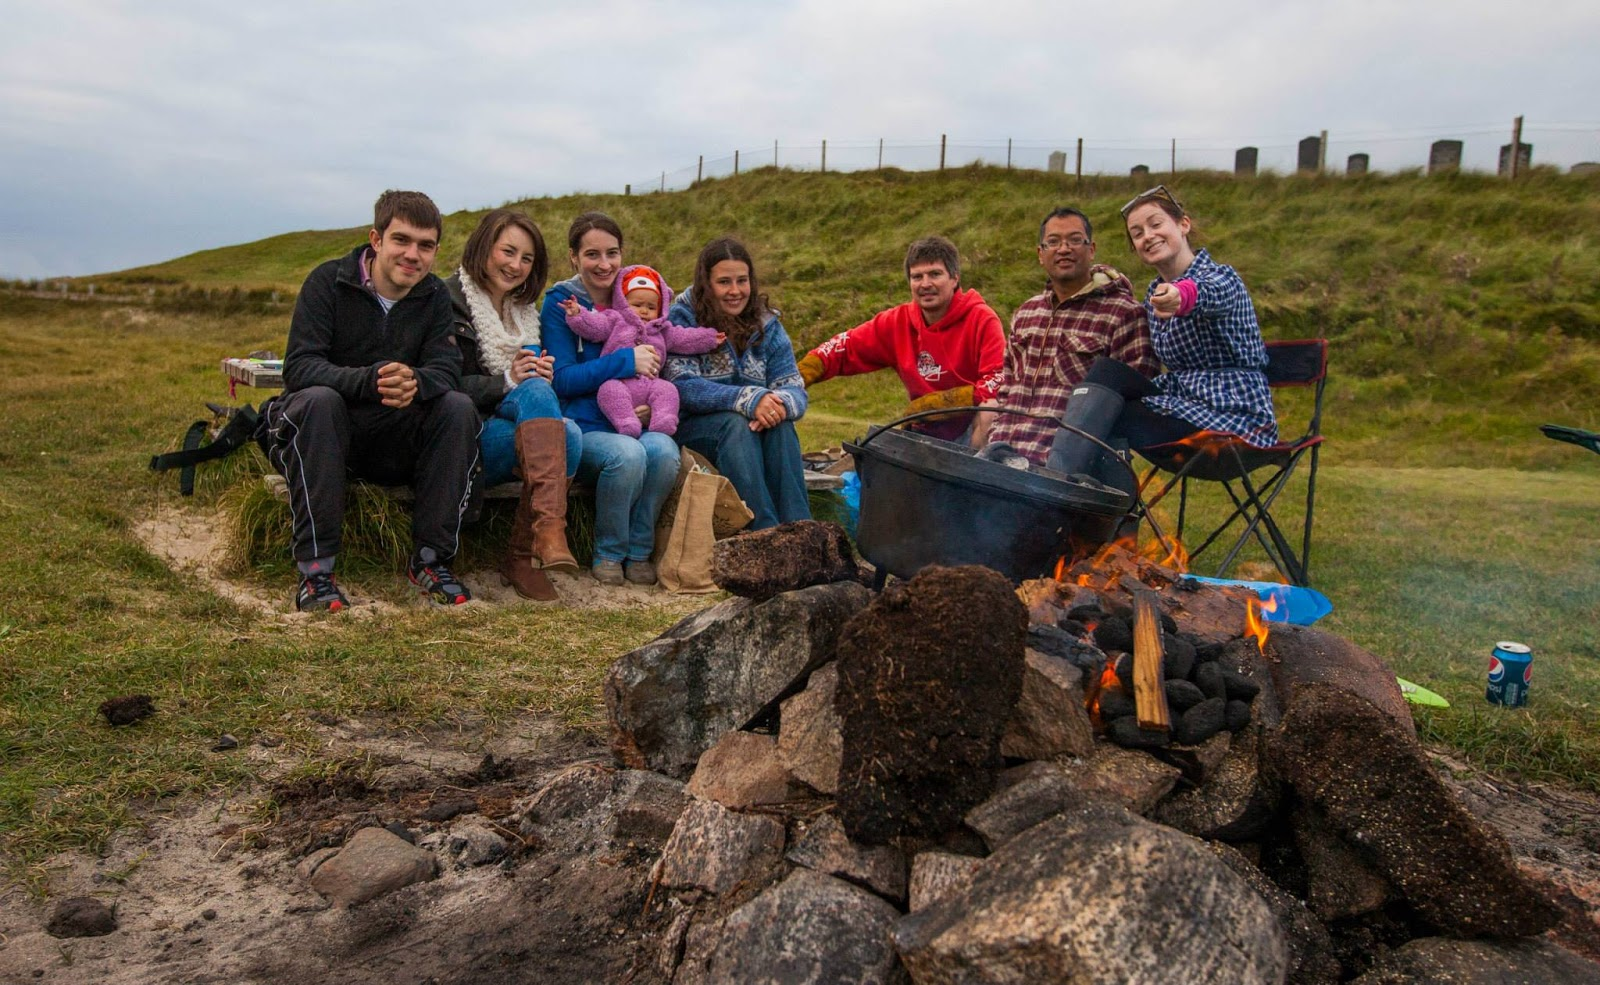 Beachside open fire bbq barbecue friends farewell leaving party isle of lewis western isles outer hebrides dal beag